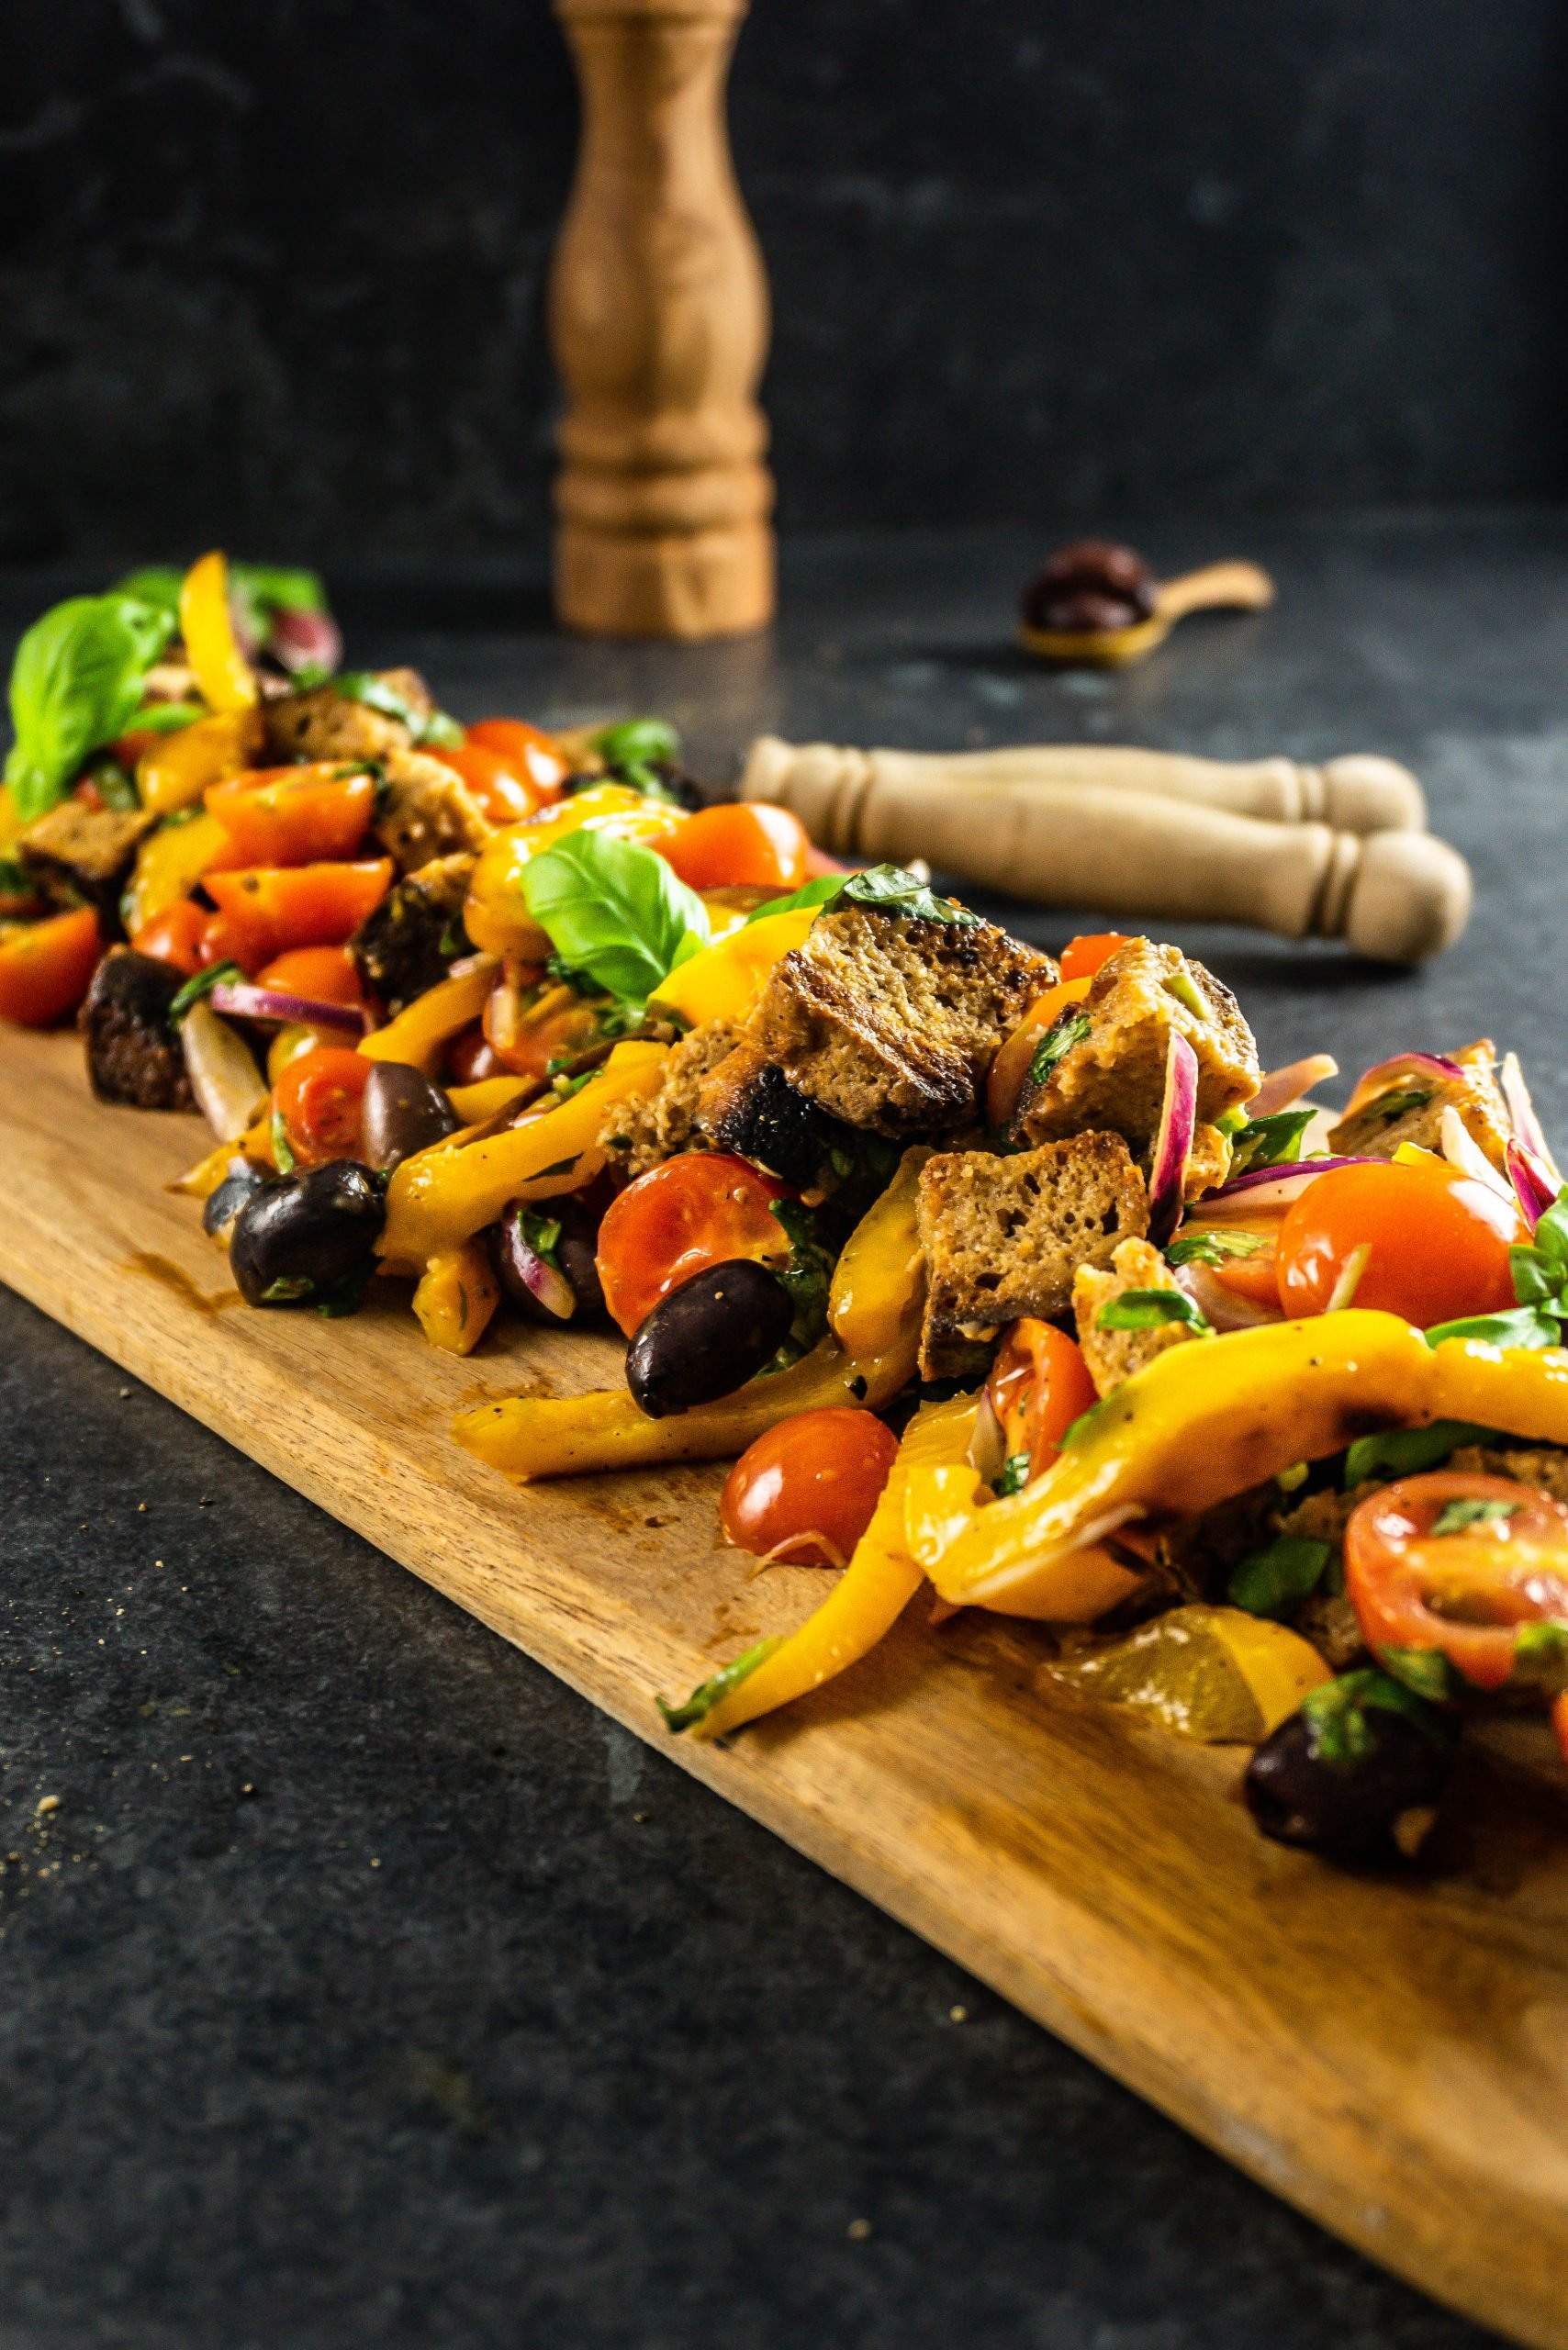 Tuscan-Style Bread and Tomato Salad (Panzanella) on a wooden board with tongs sticking out shot from a three-quarter angle